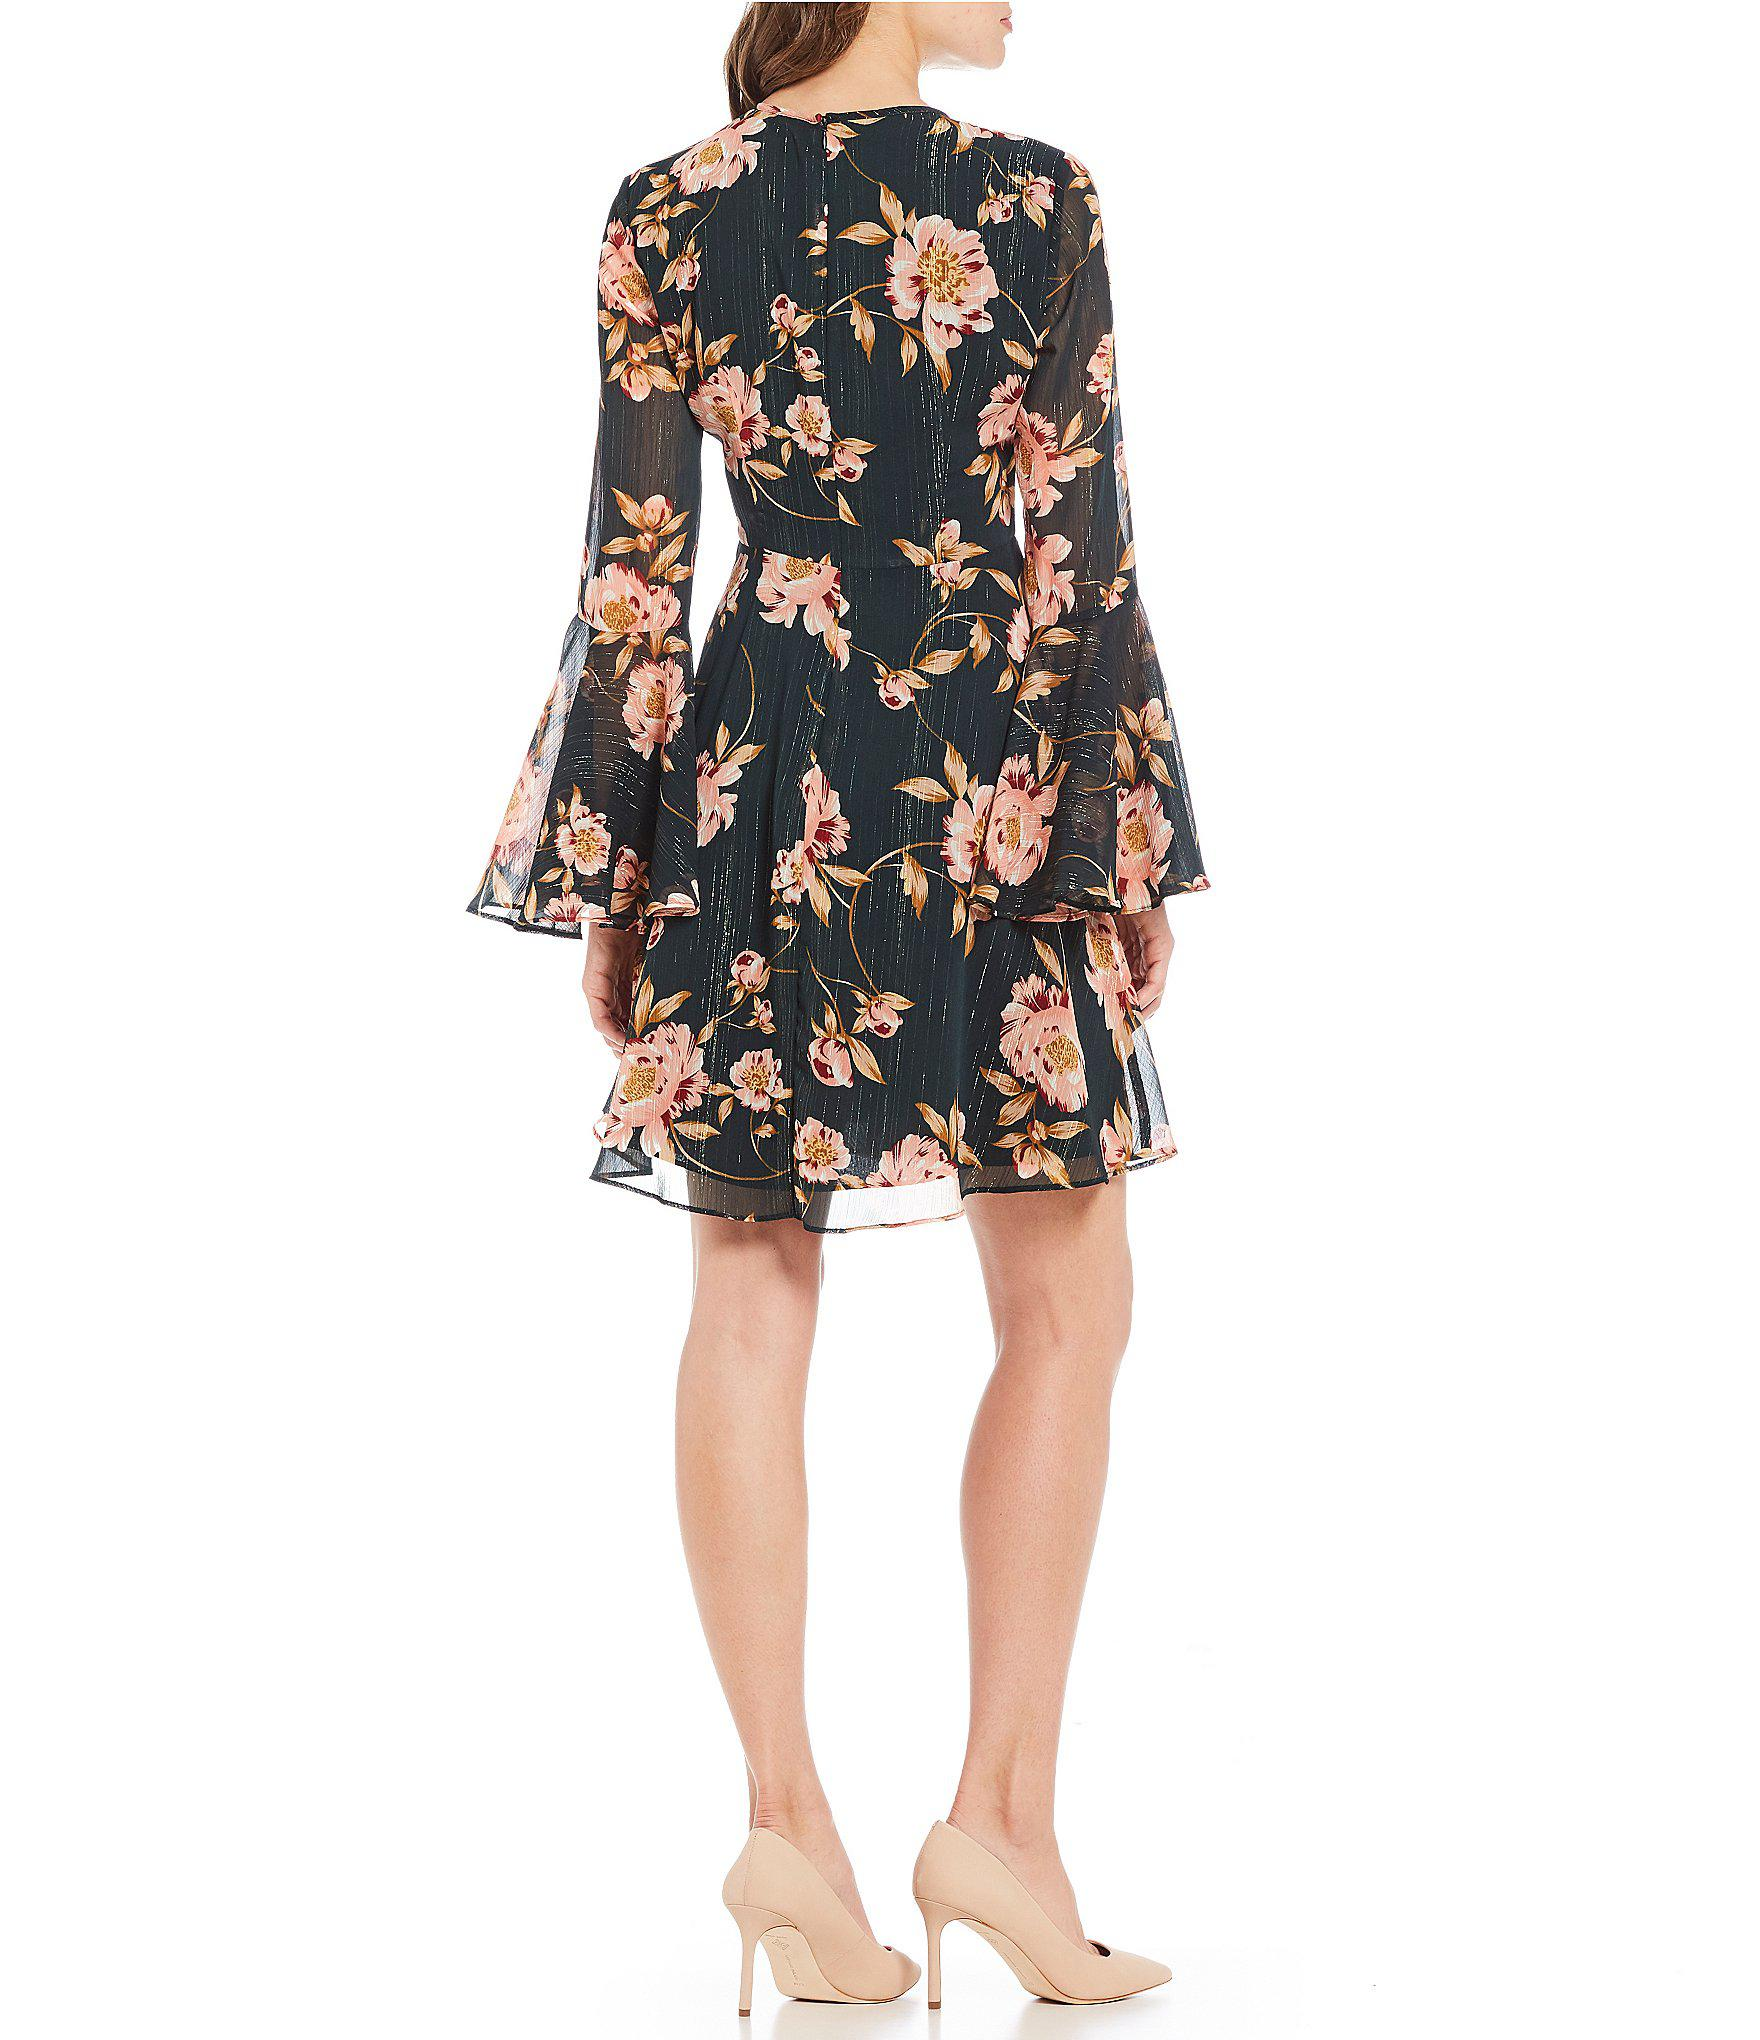 5a75a90598df1 Donna Morgan Floral Print Bell Sleeve Lurex Chiffon Dress in Black ...